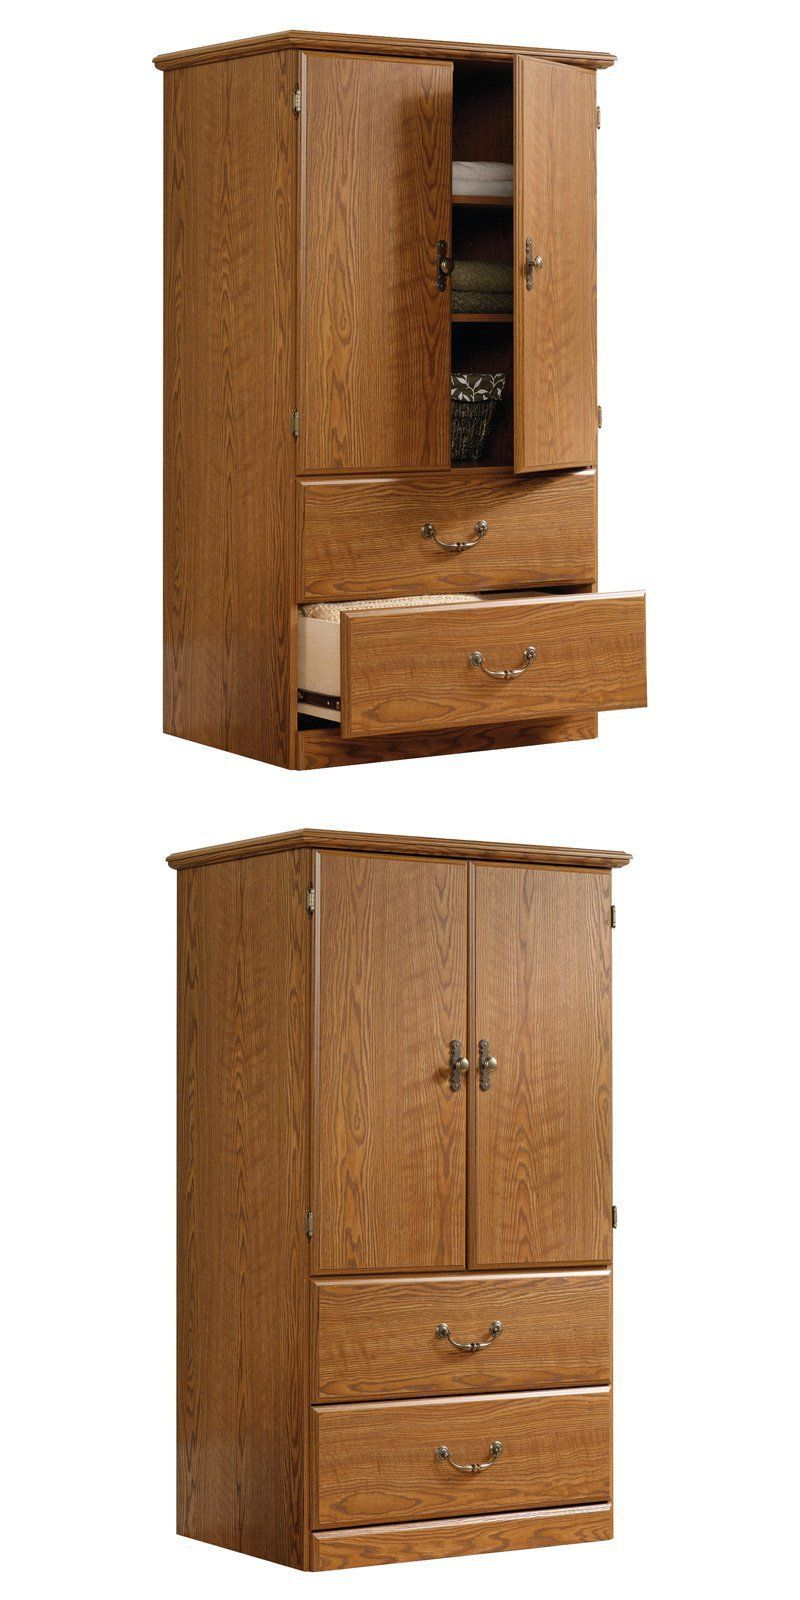 Armoires and Wardrobes 103430: Bedroom Armoire Wardrobe ...